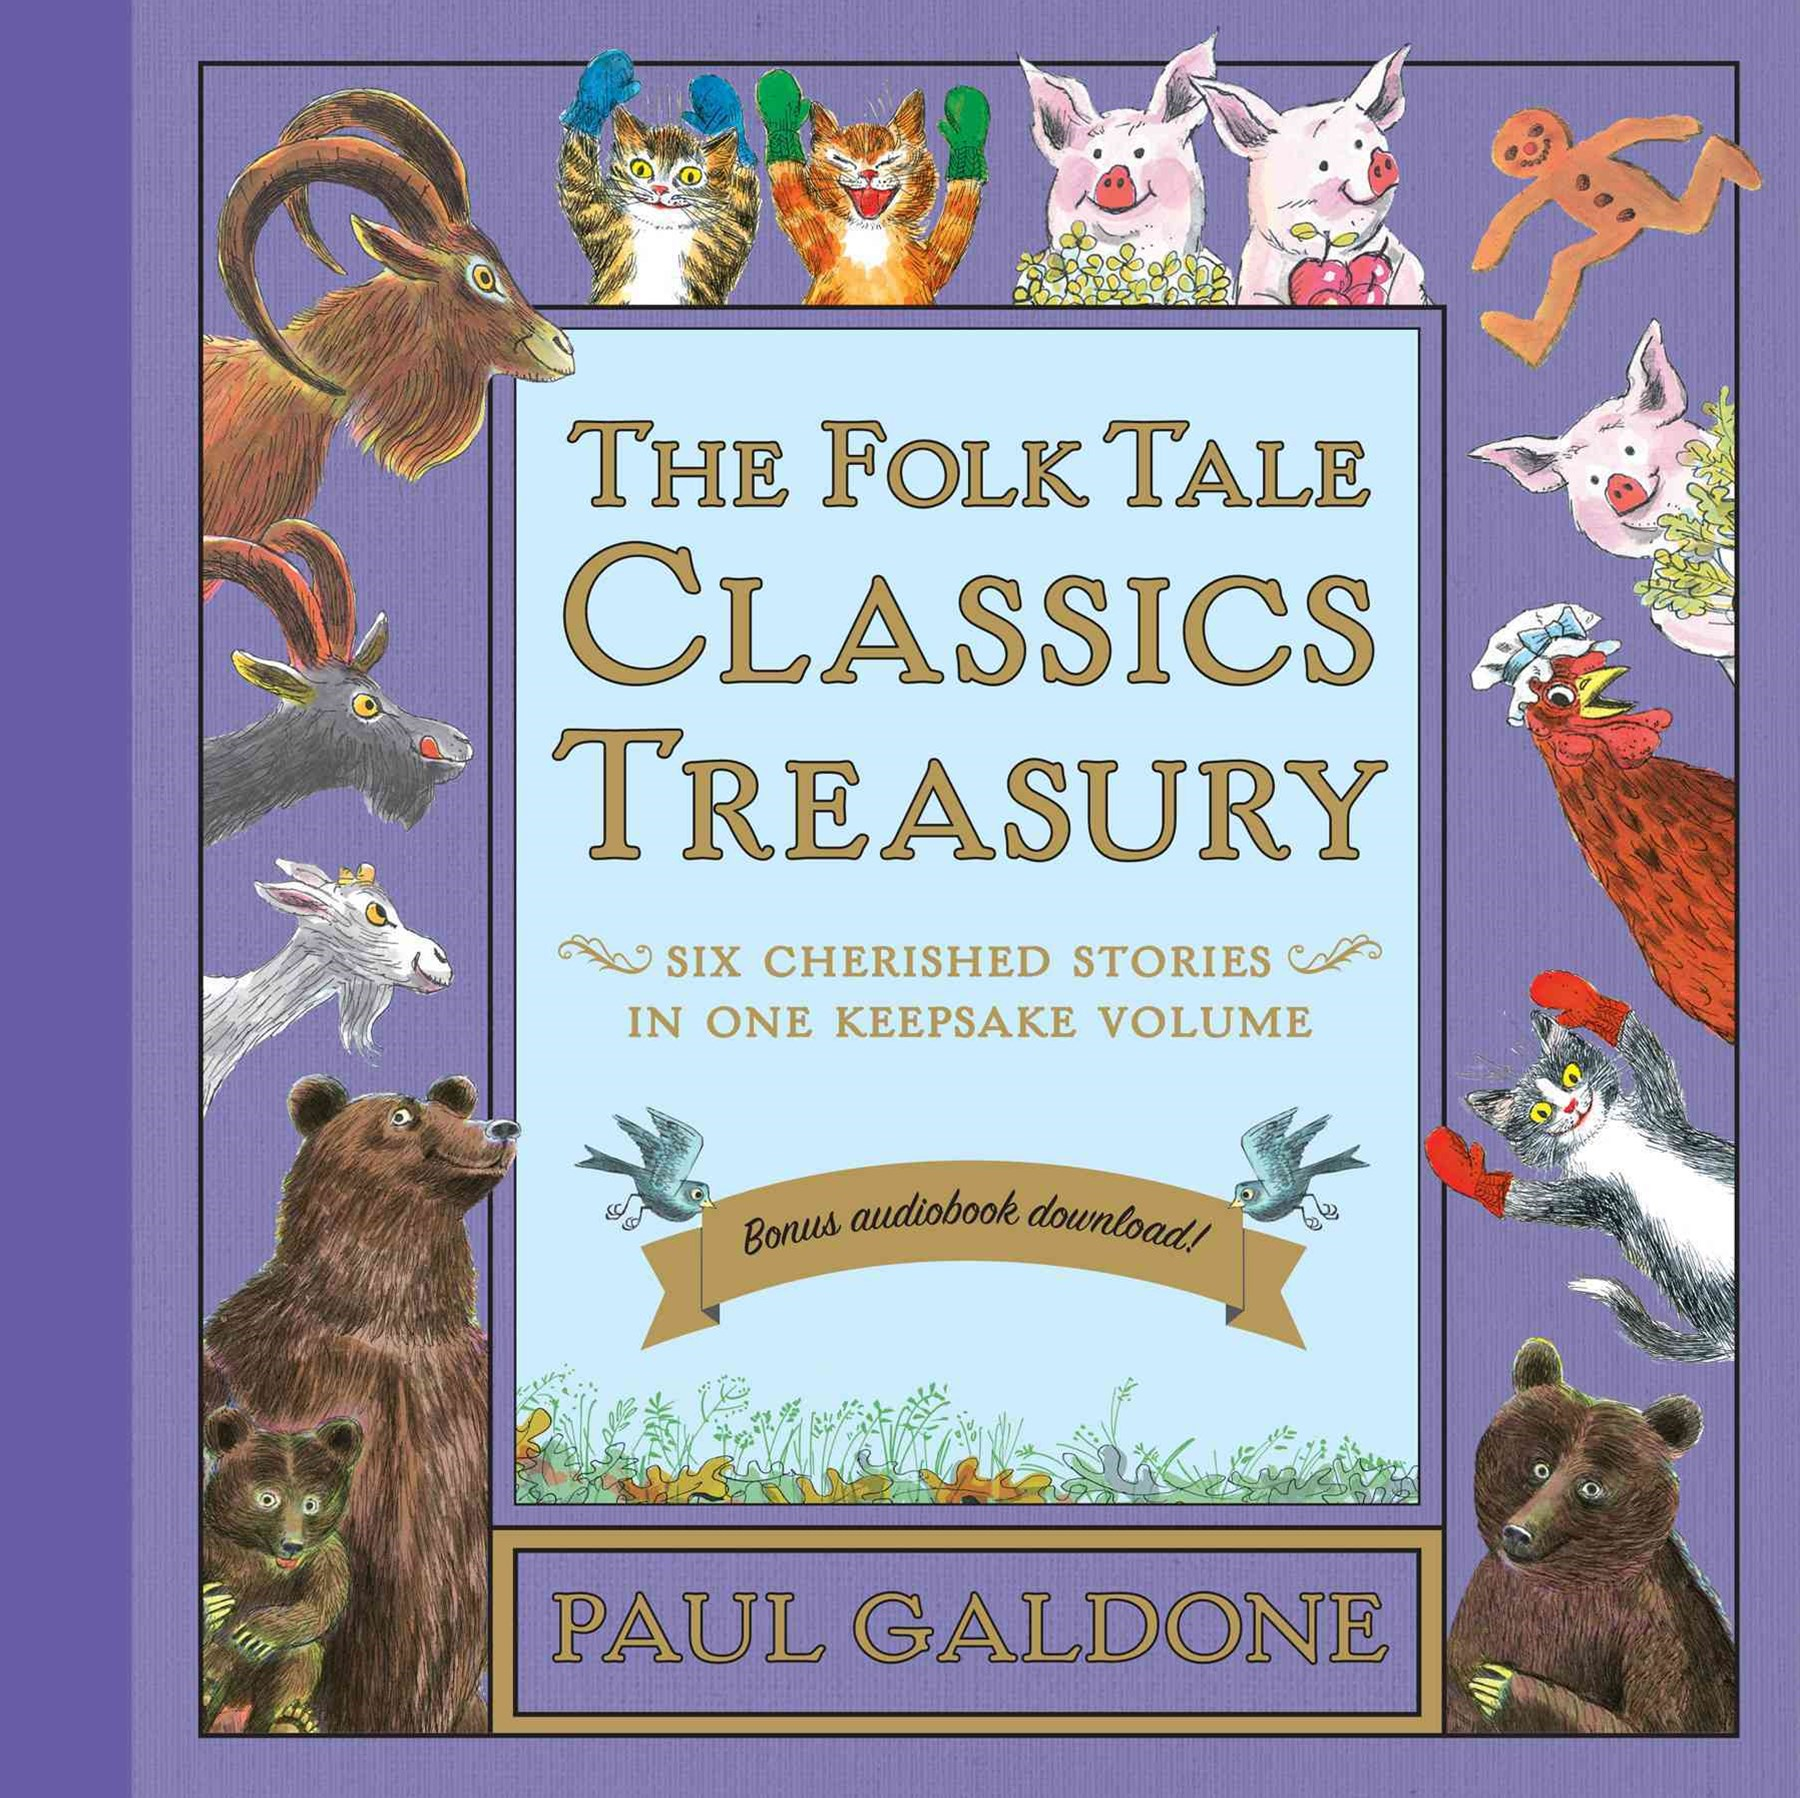 The Folk Tale Classics Treasury